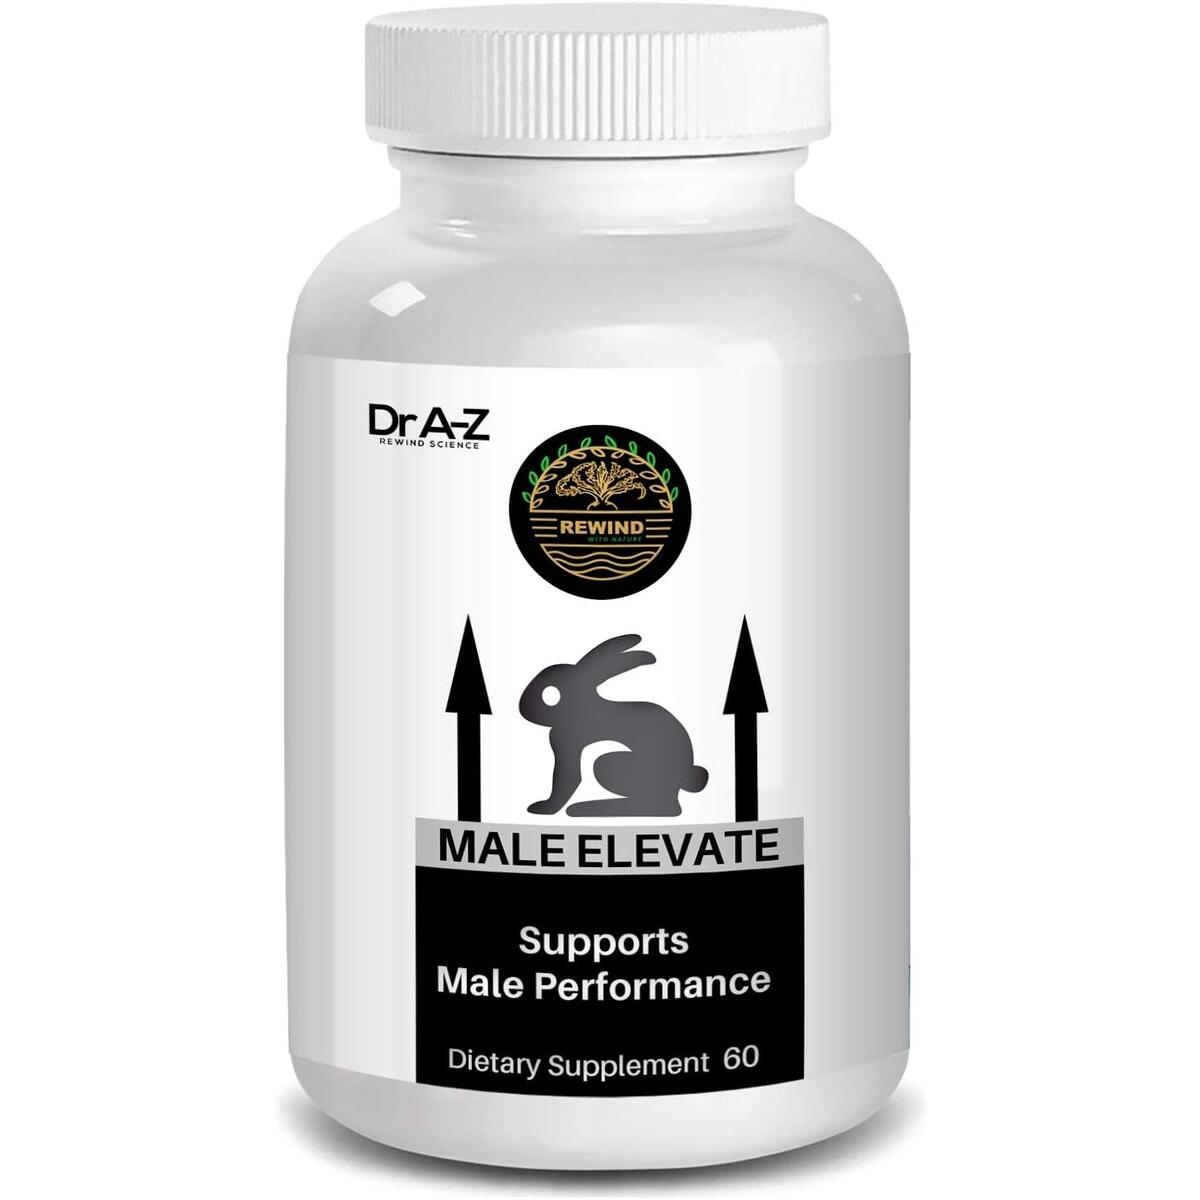 Male Enhancement Supplement Elevate Energy Booster Dietary Supplement - Male Enhancement Pills, Helps Restore Libido , Drive JR Power by Dr A-Z - 60 Capsules